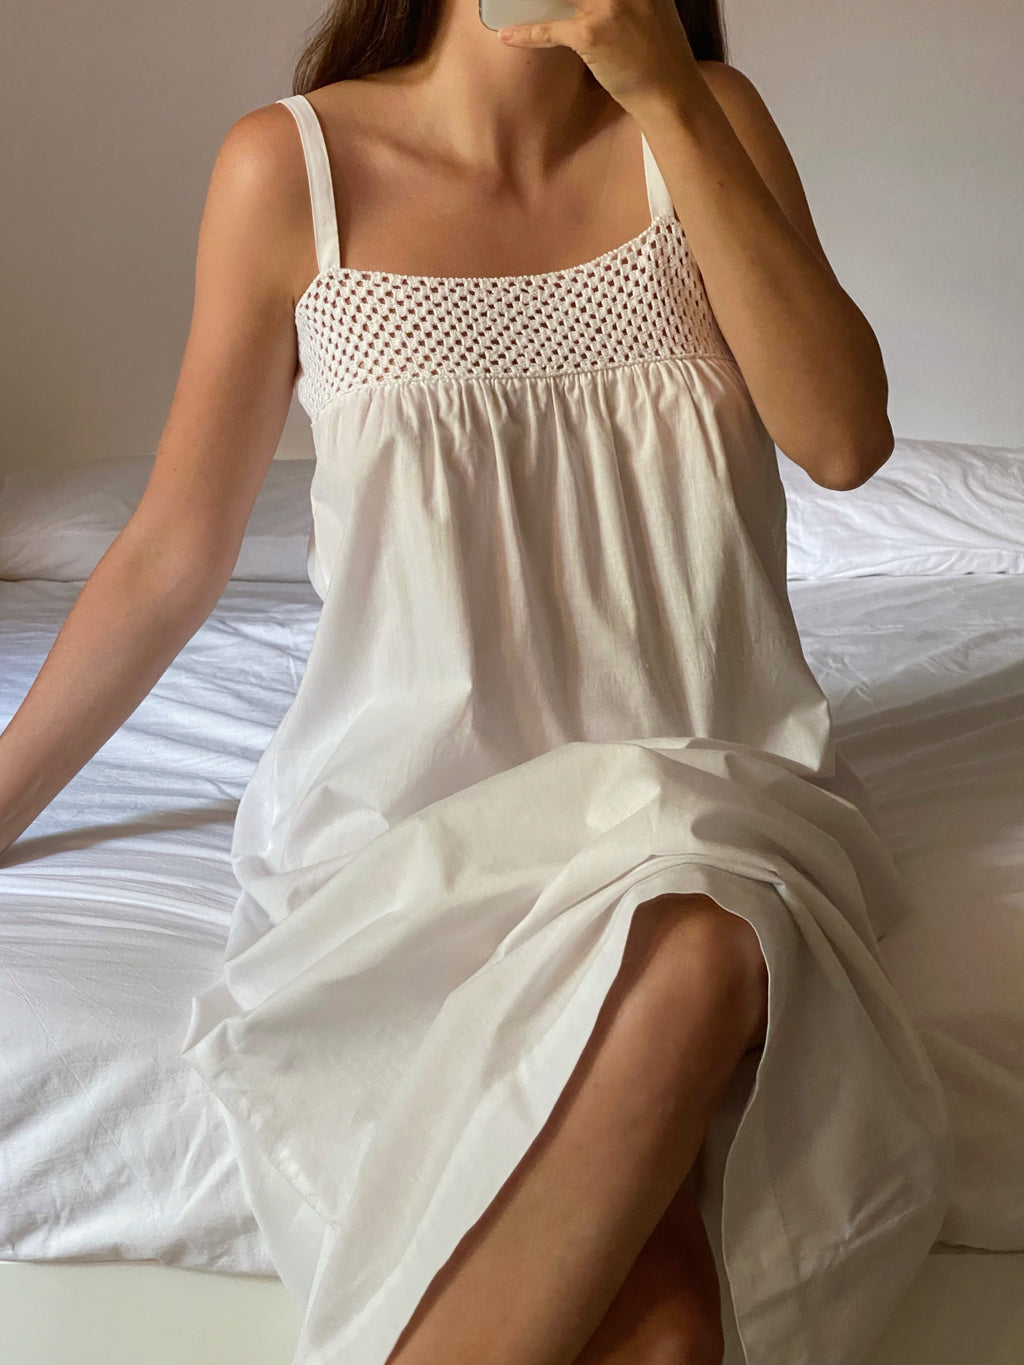 Vintage antique crochet details pure cotton slip dress